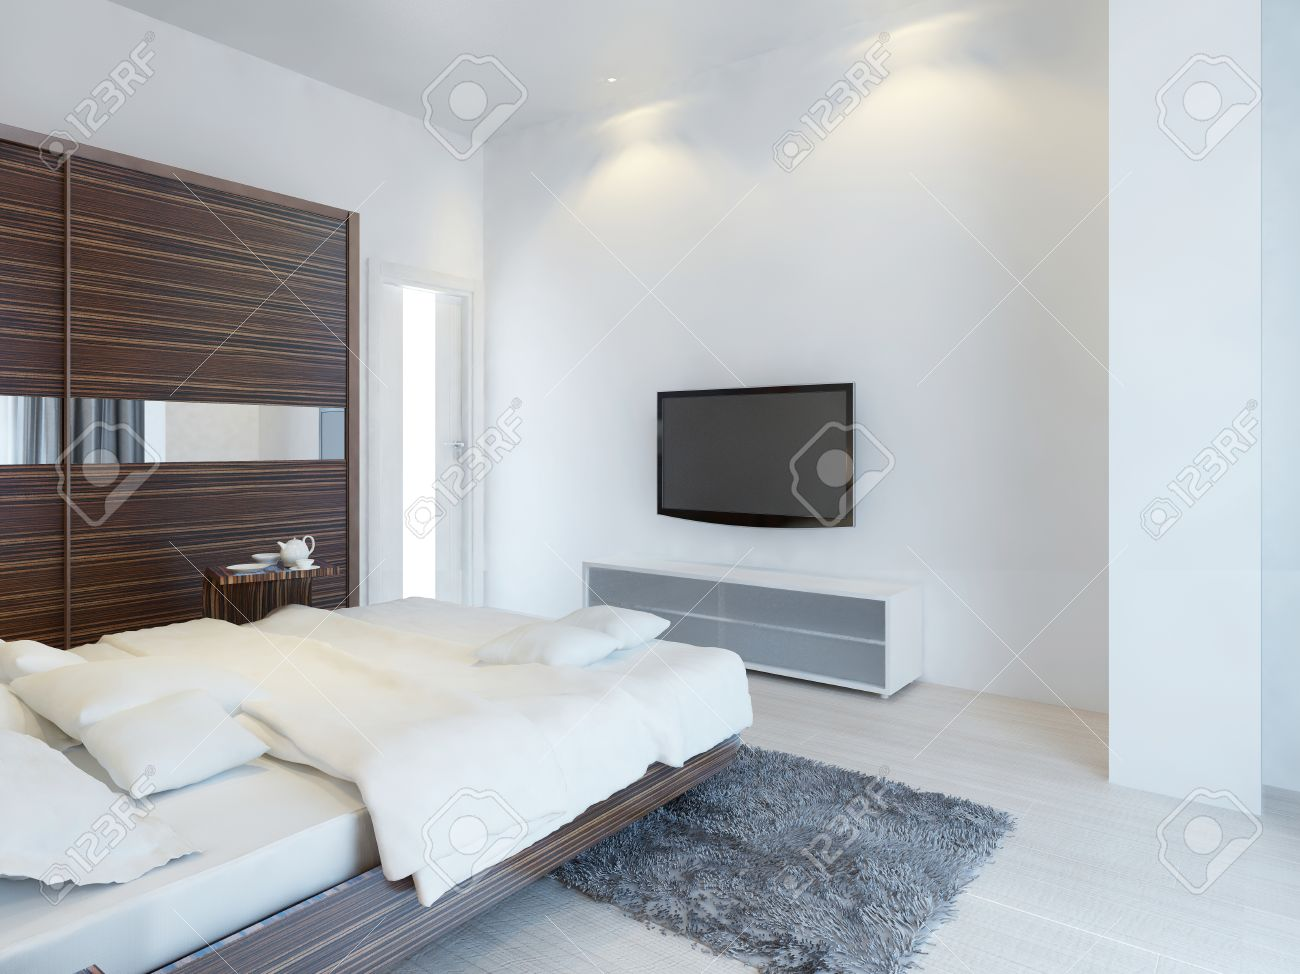 . Bedroom with TV and a media console with a large sliding wardrobe